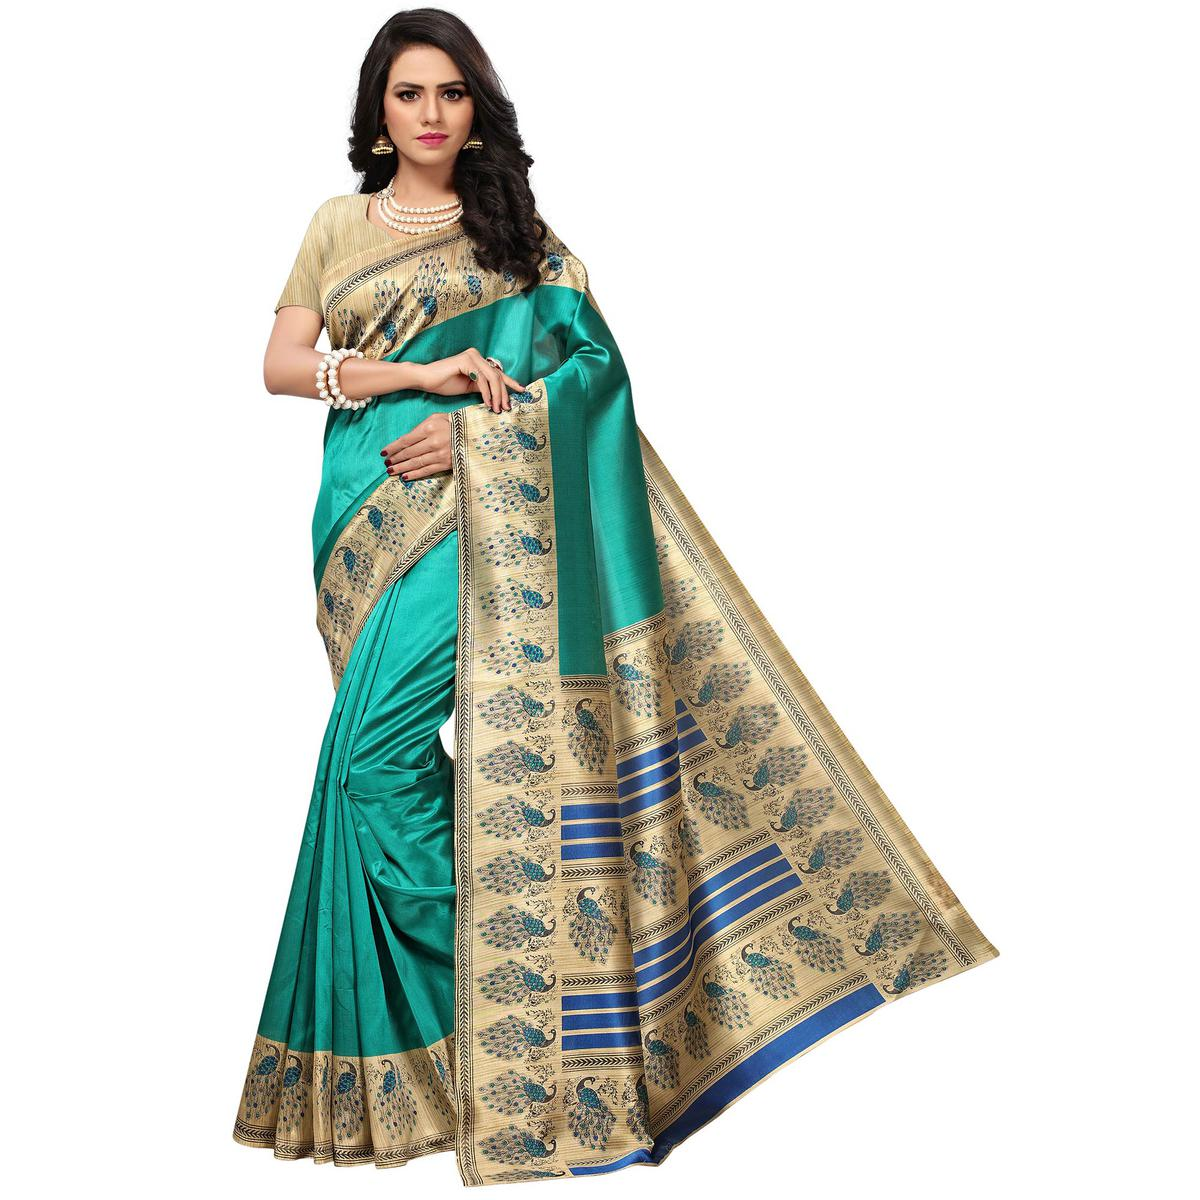 Amazing Turquoise Green Colored Festive Wear Printed Mysore Art Silk Saree